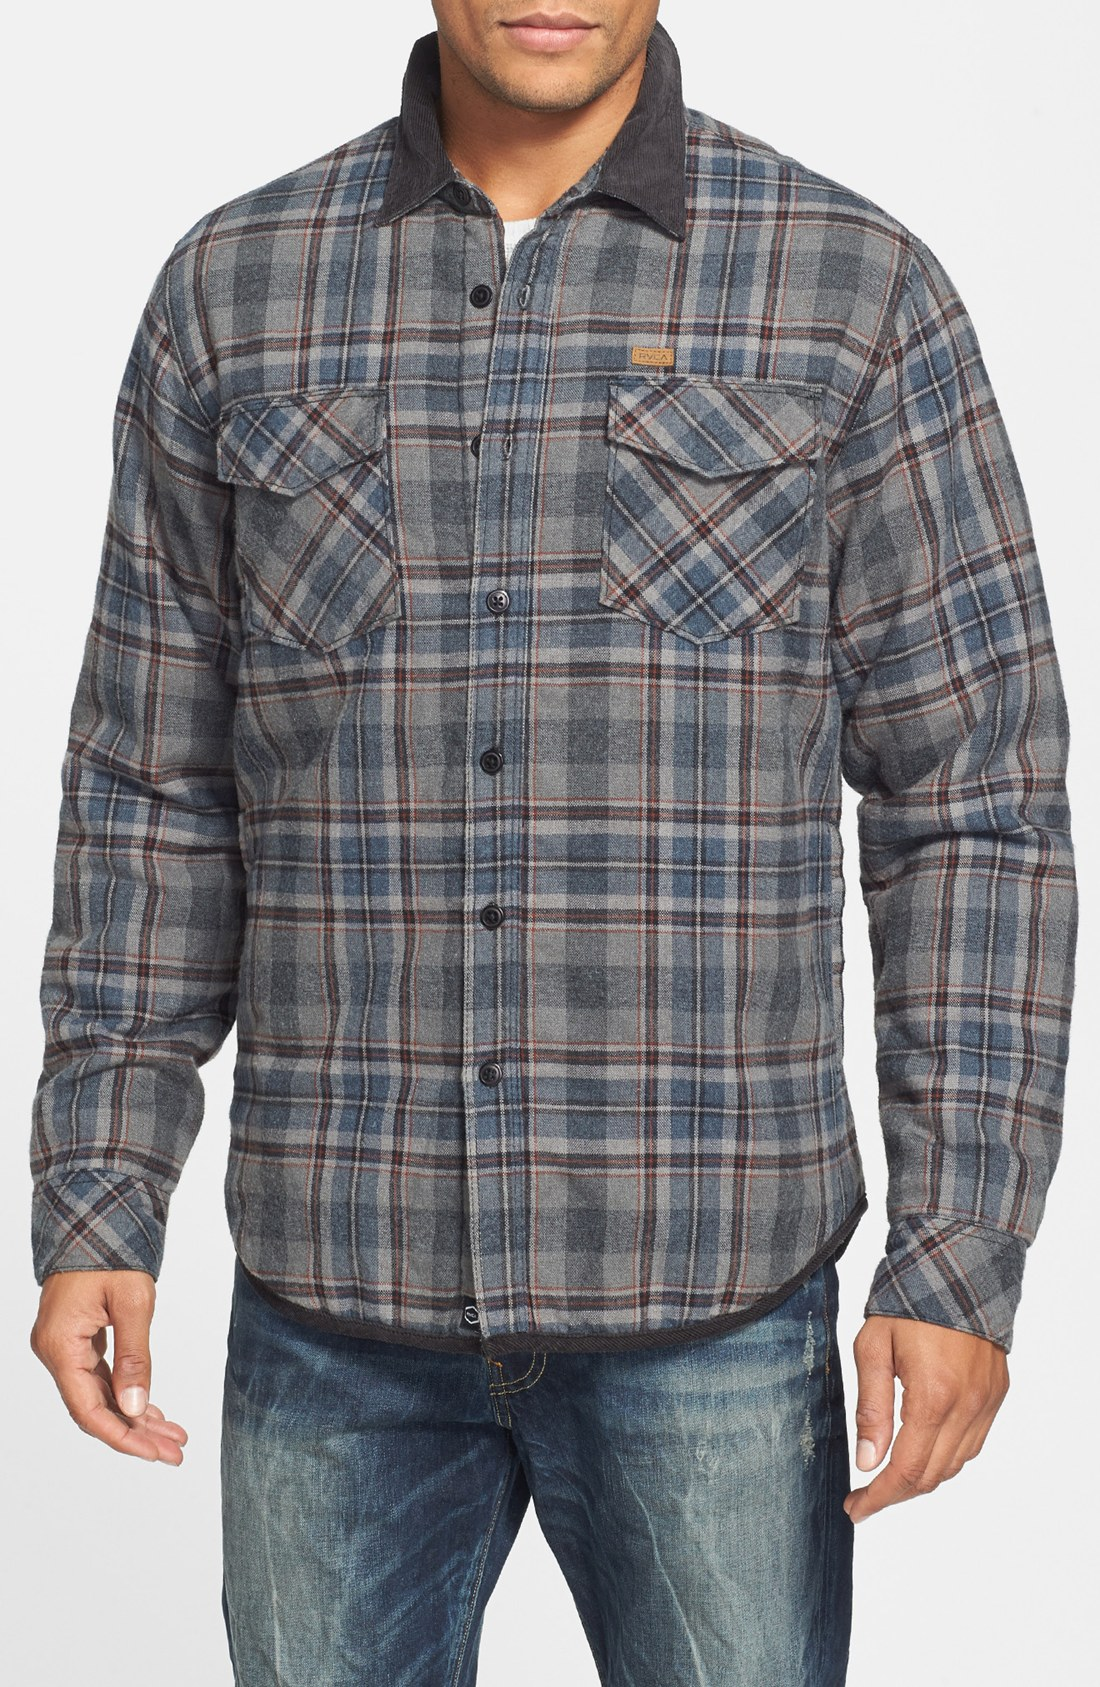 Rvca Frostline Plaid Flannel Shirt Jacket with Quilted Lining in ...